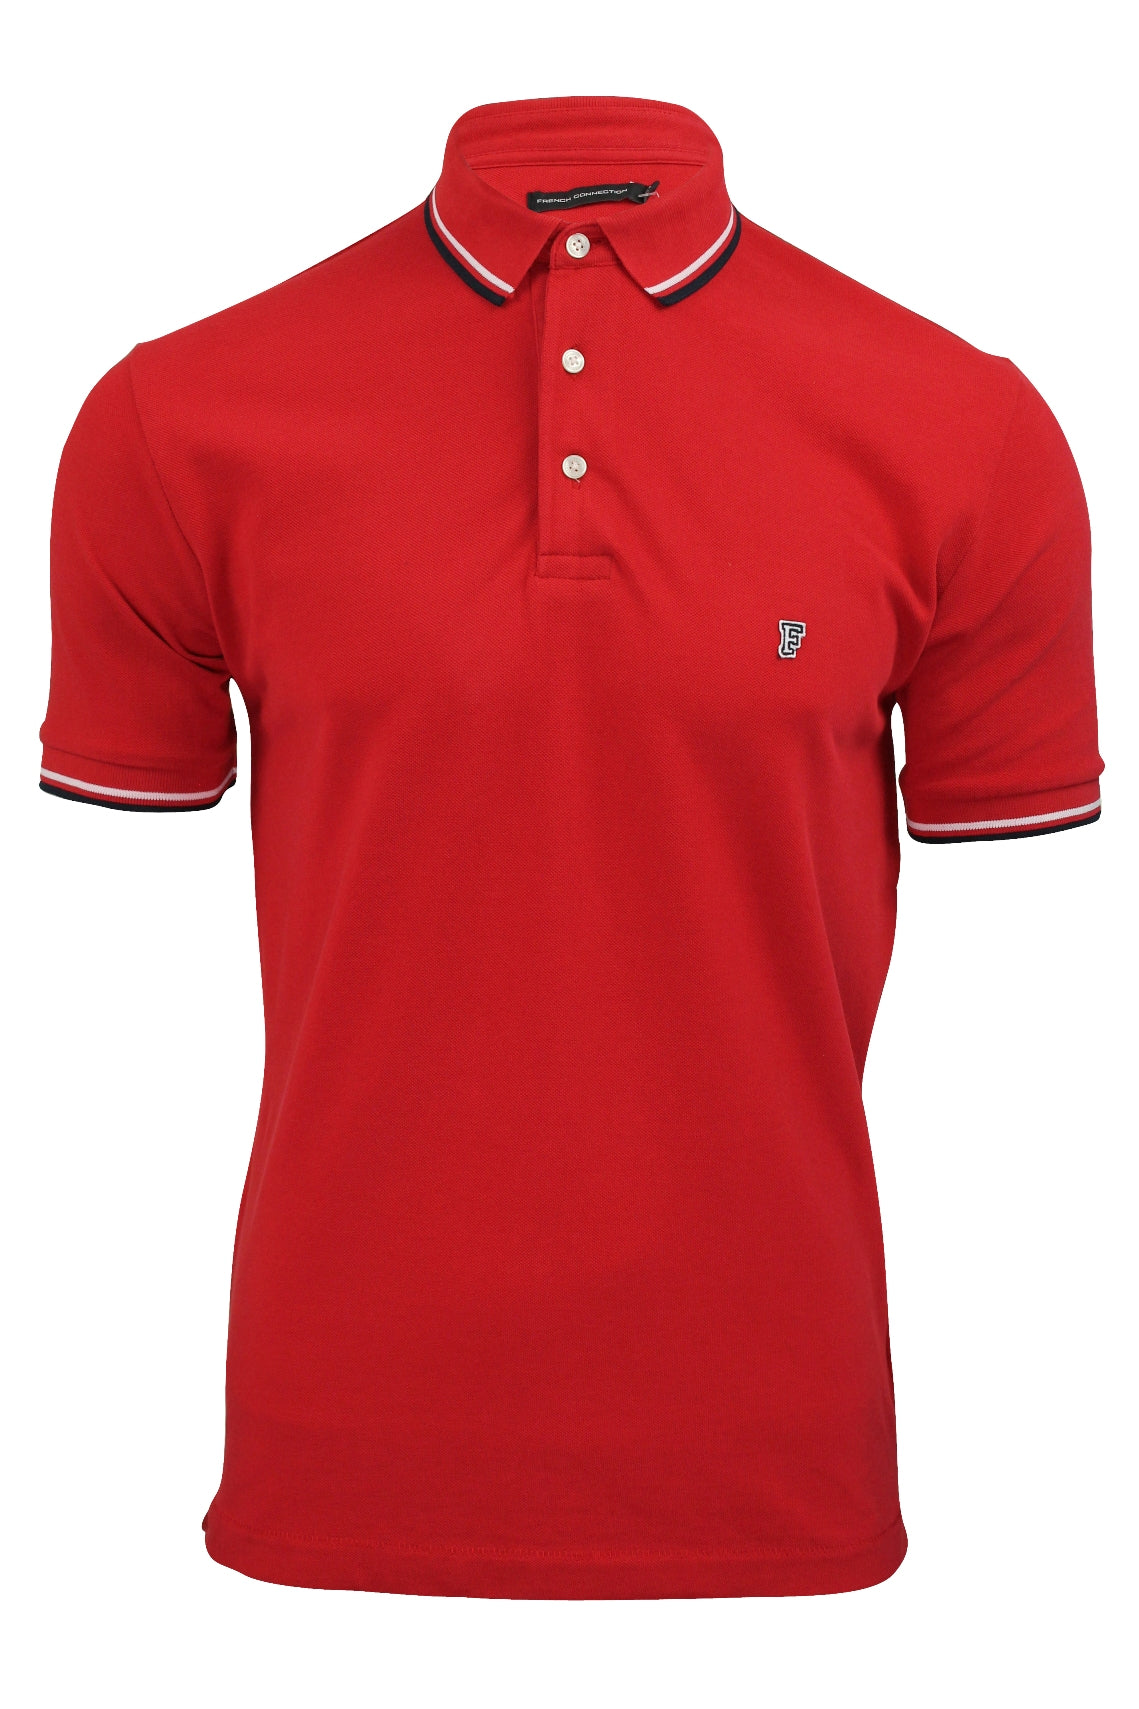 Mens Pique Polo T-Shirt by FCUK/French Connection 'F' Logo Twin Tipped-Main Image